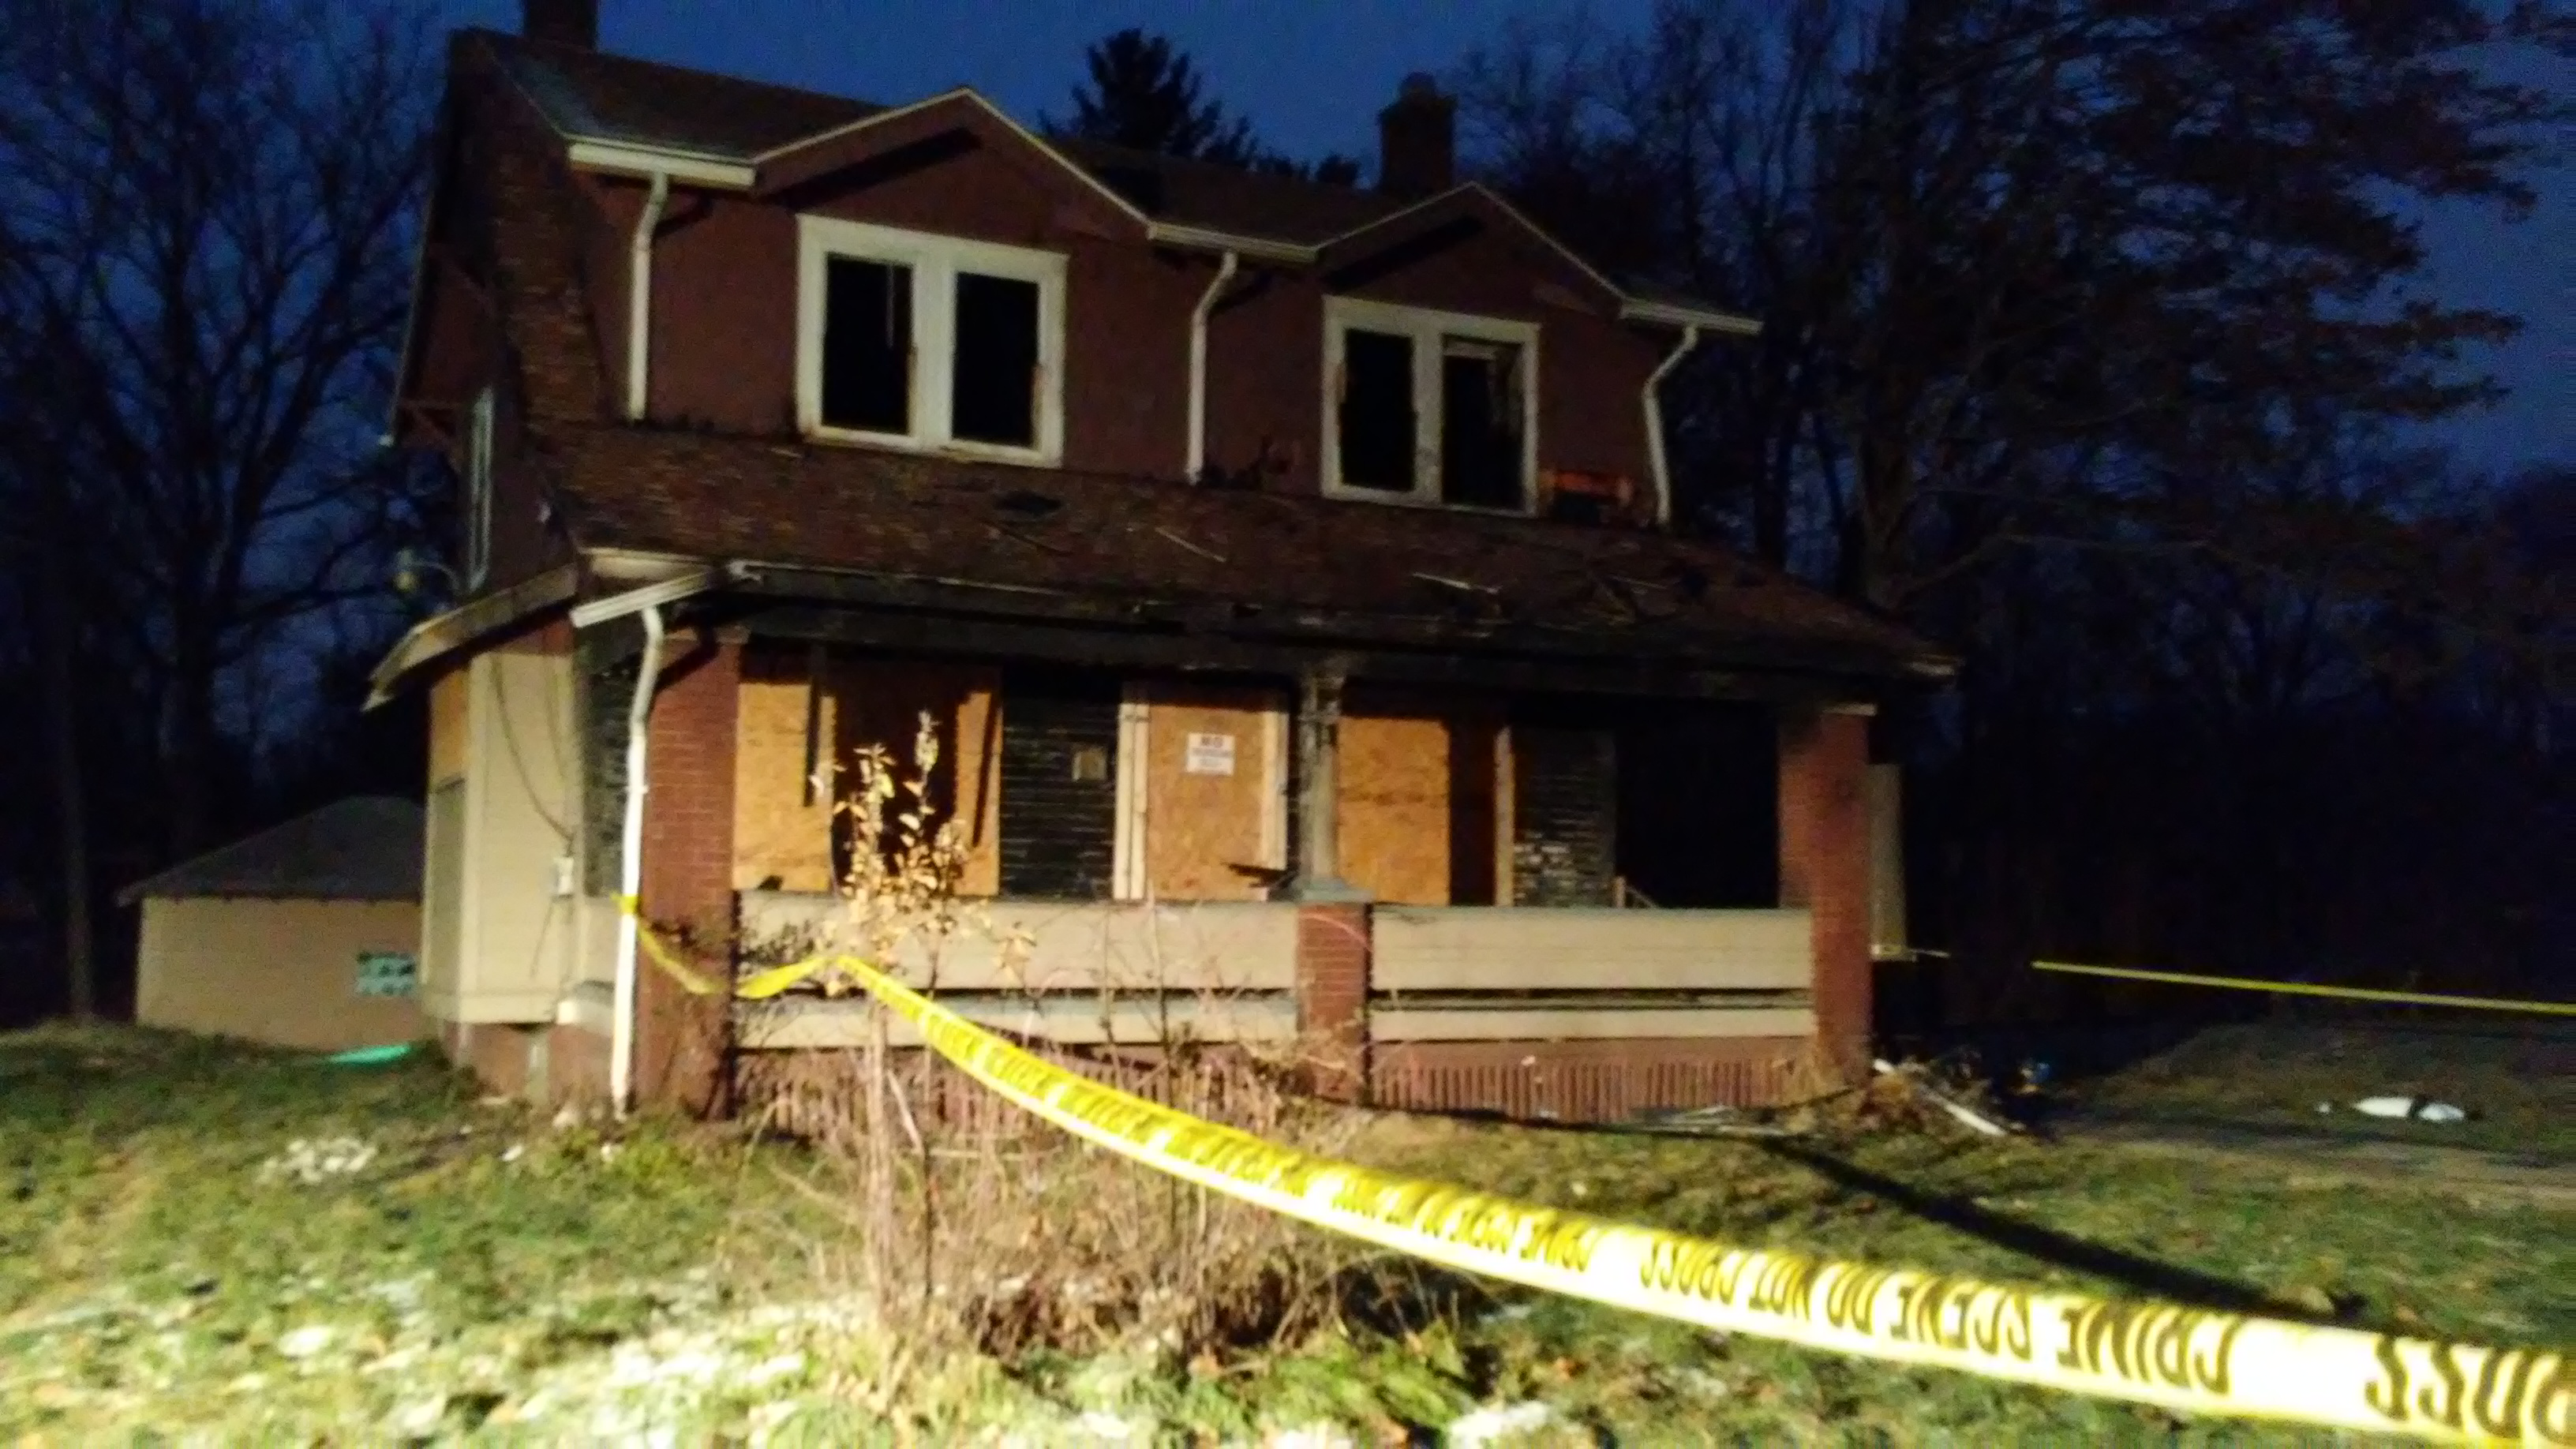 5 children dead in OH house fire